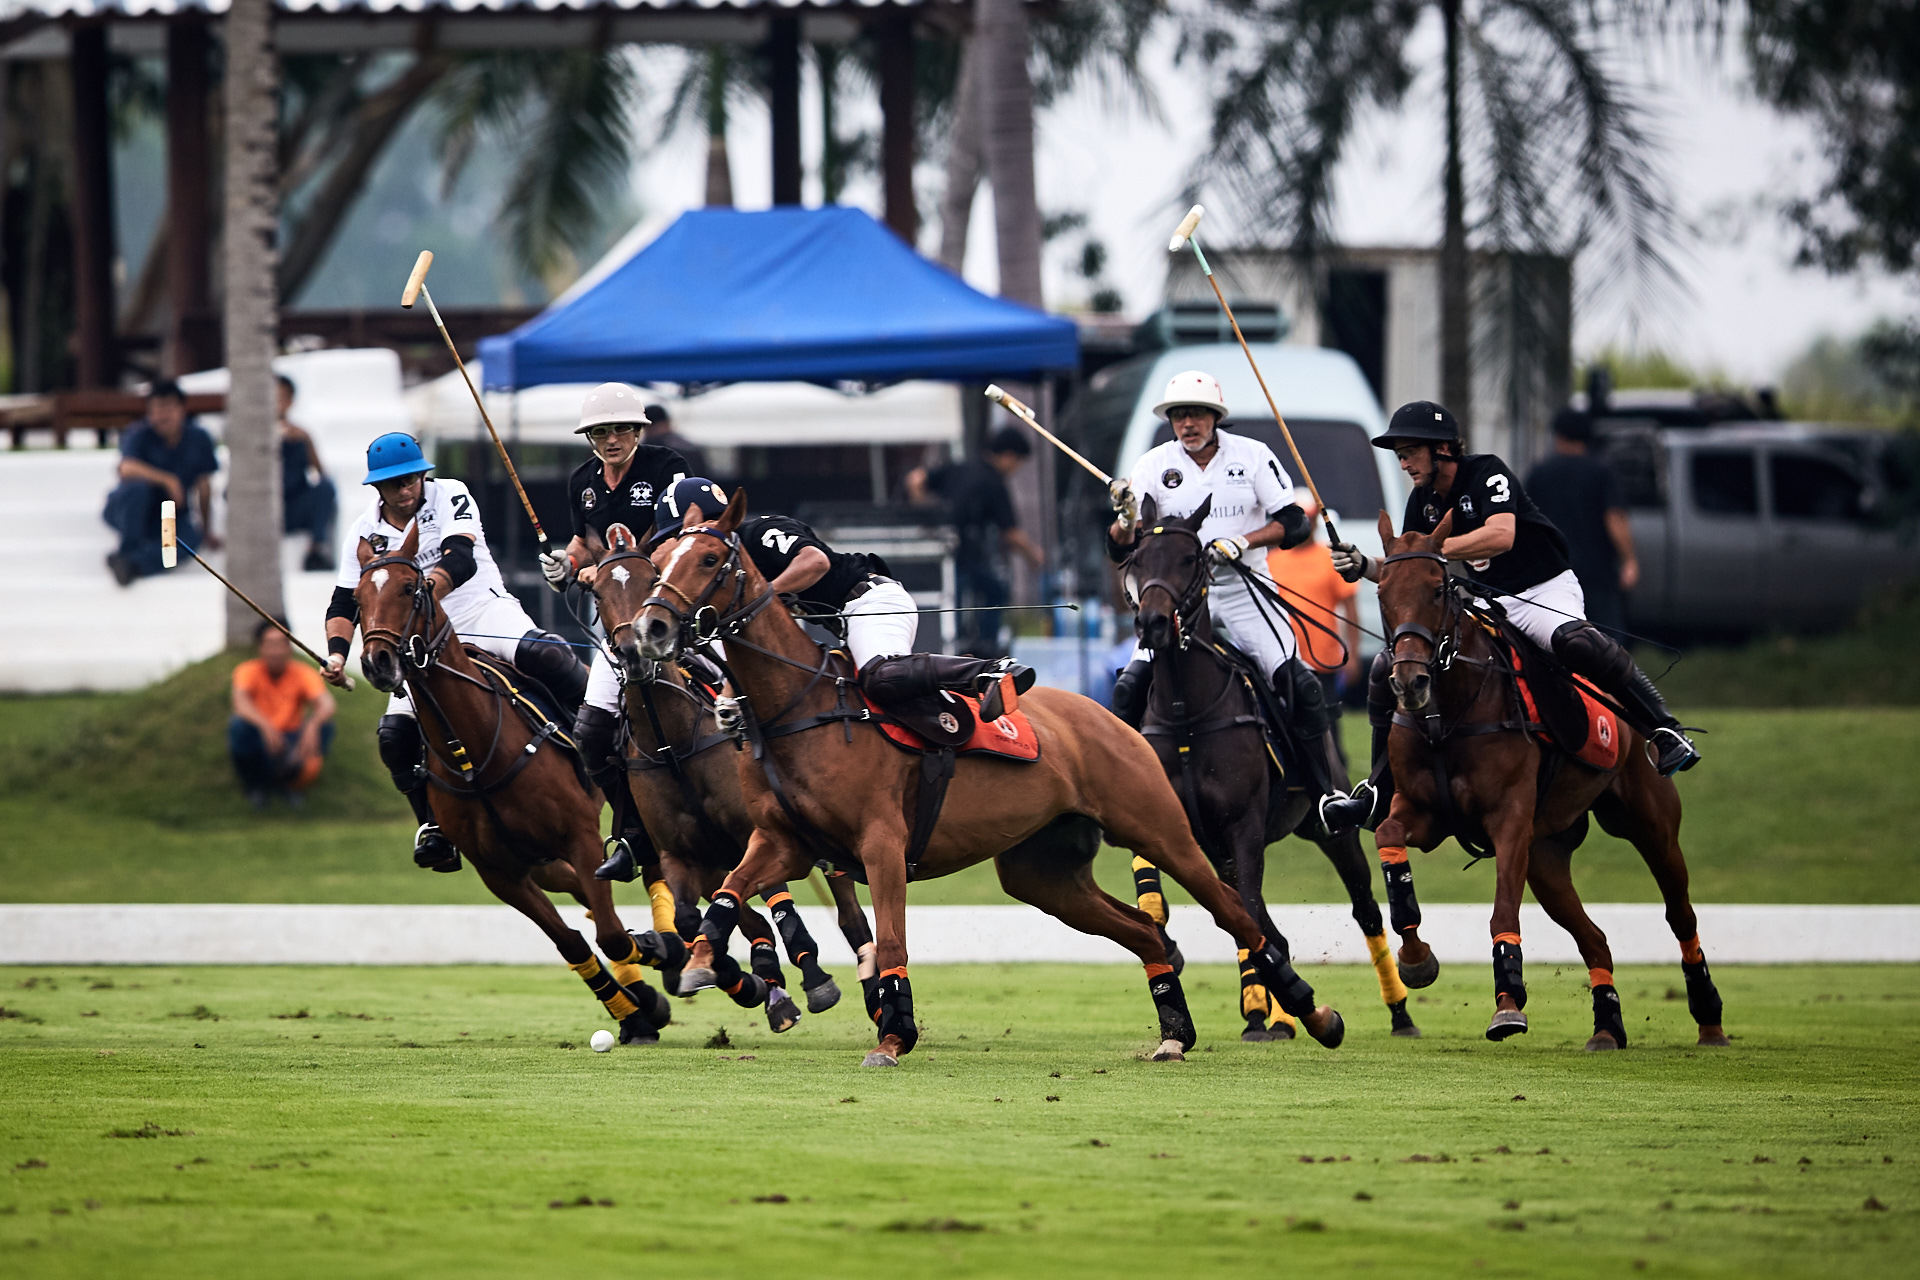 Thai Polo and La Familia players battle for possession during the first chukka of the final.